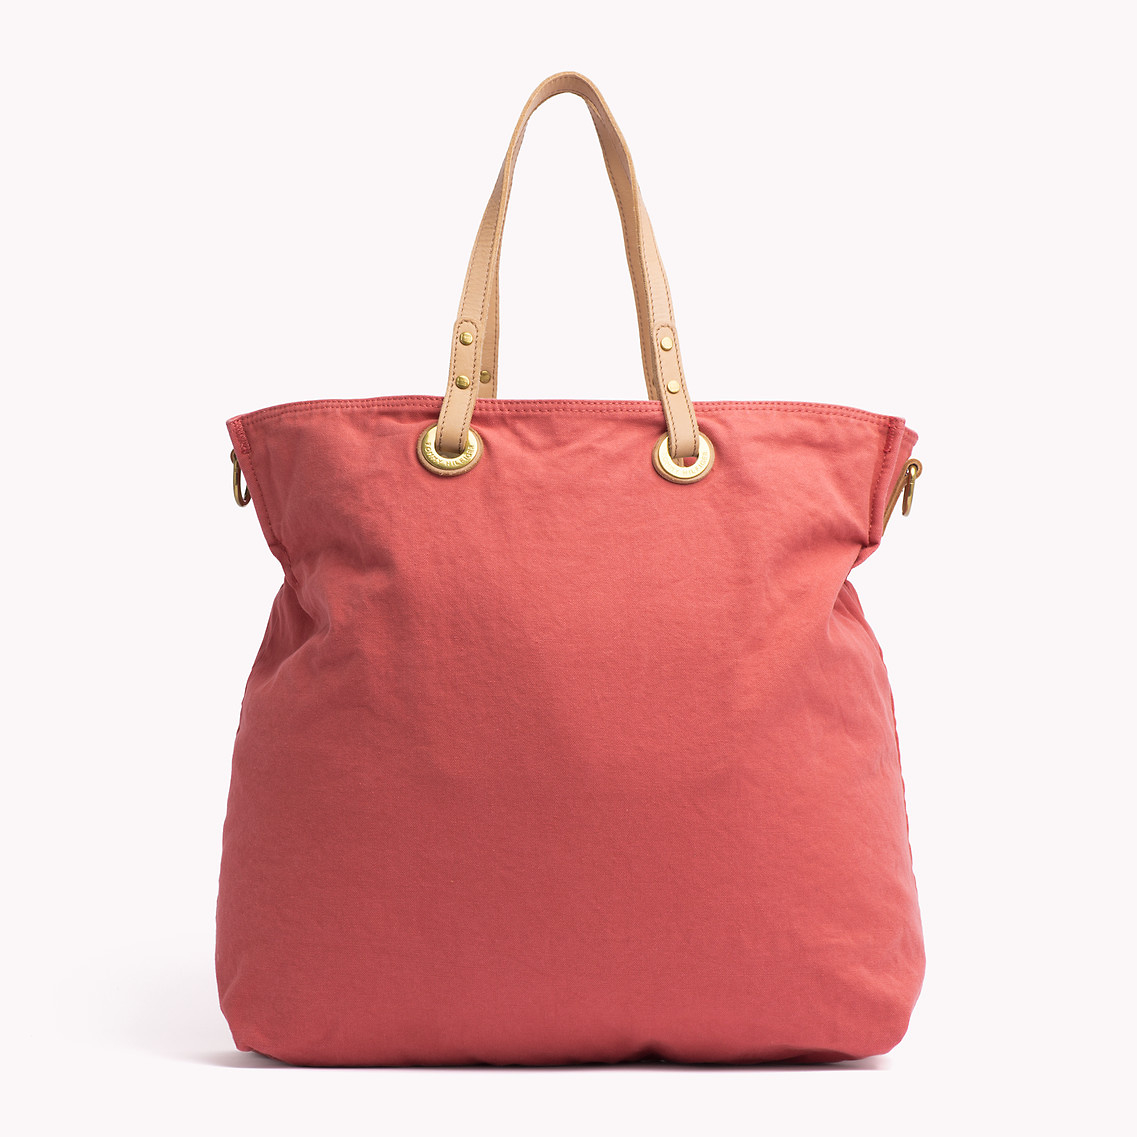 Tommy Hilfiger Tote Bag In Red Lyst